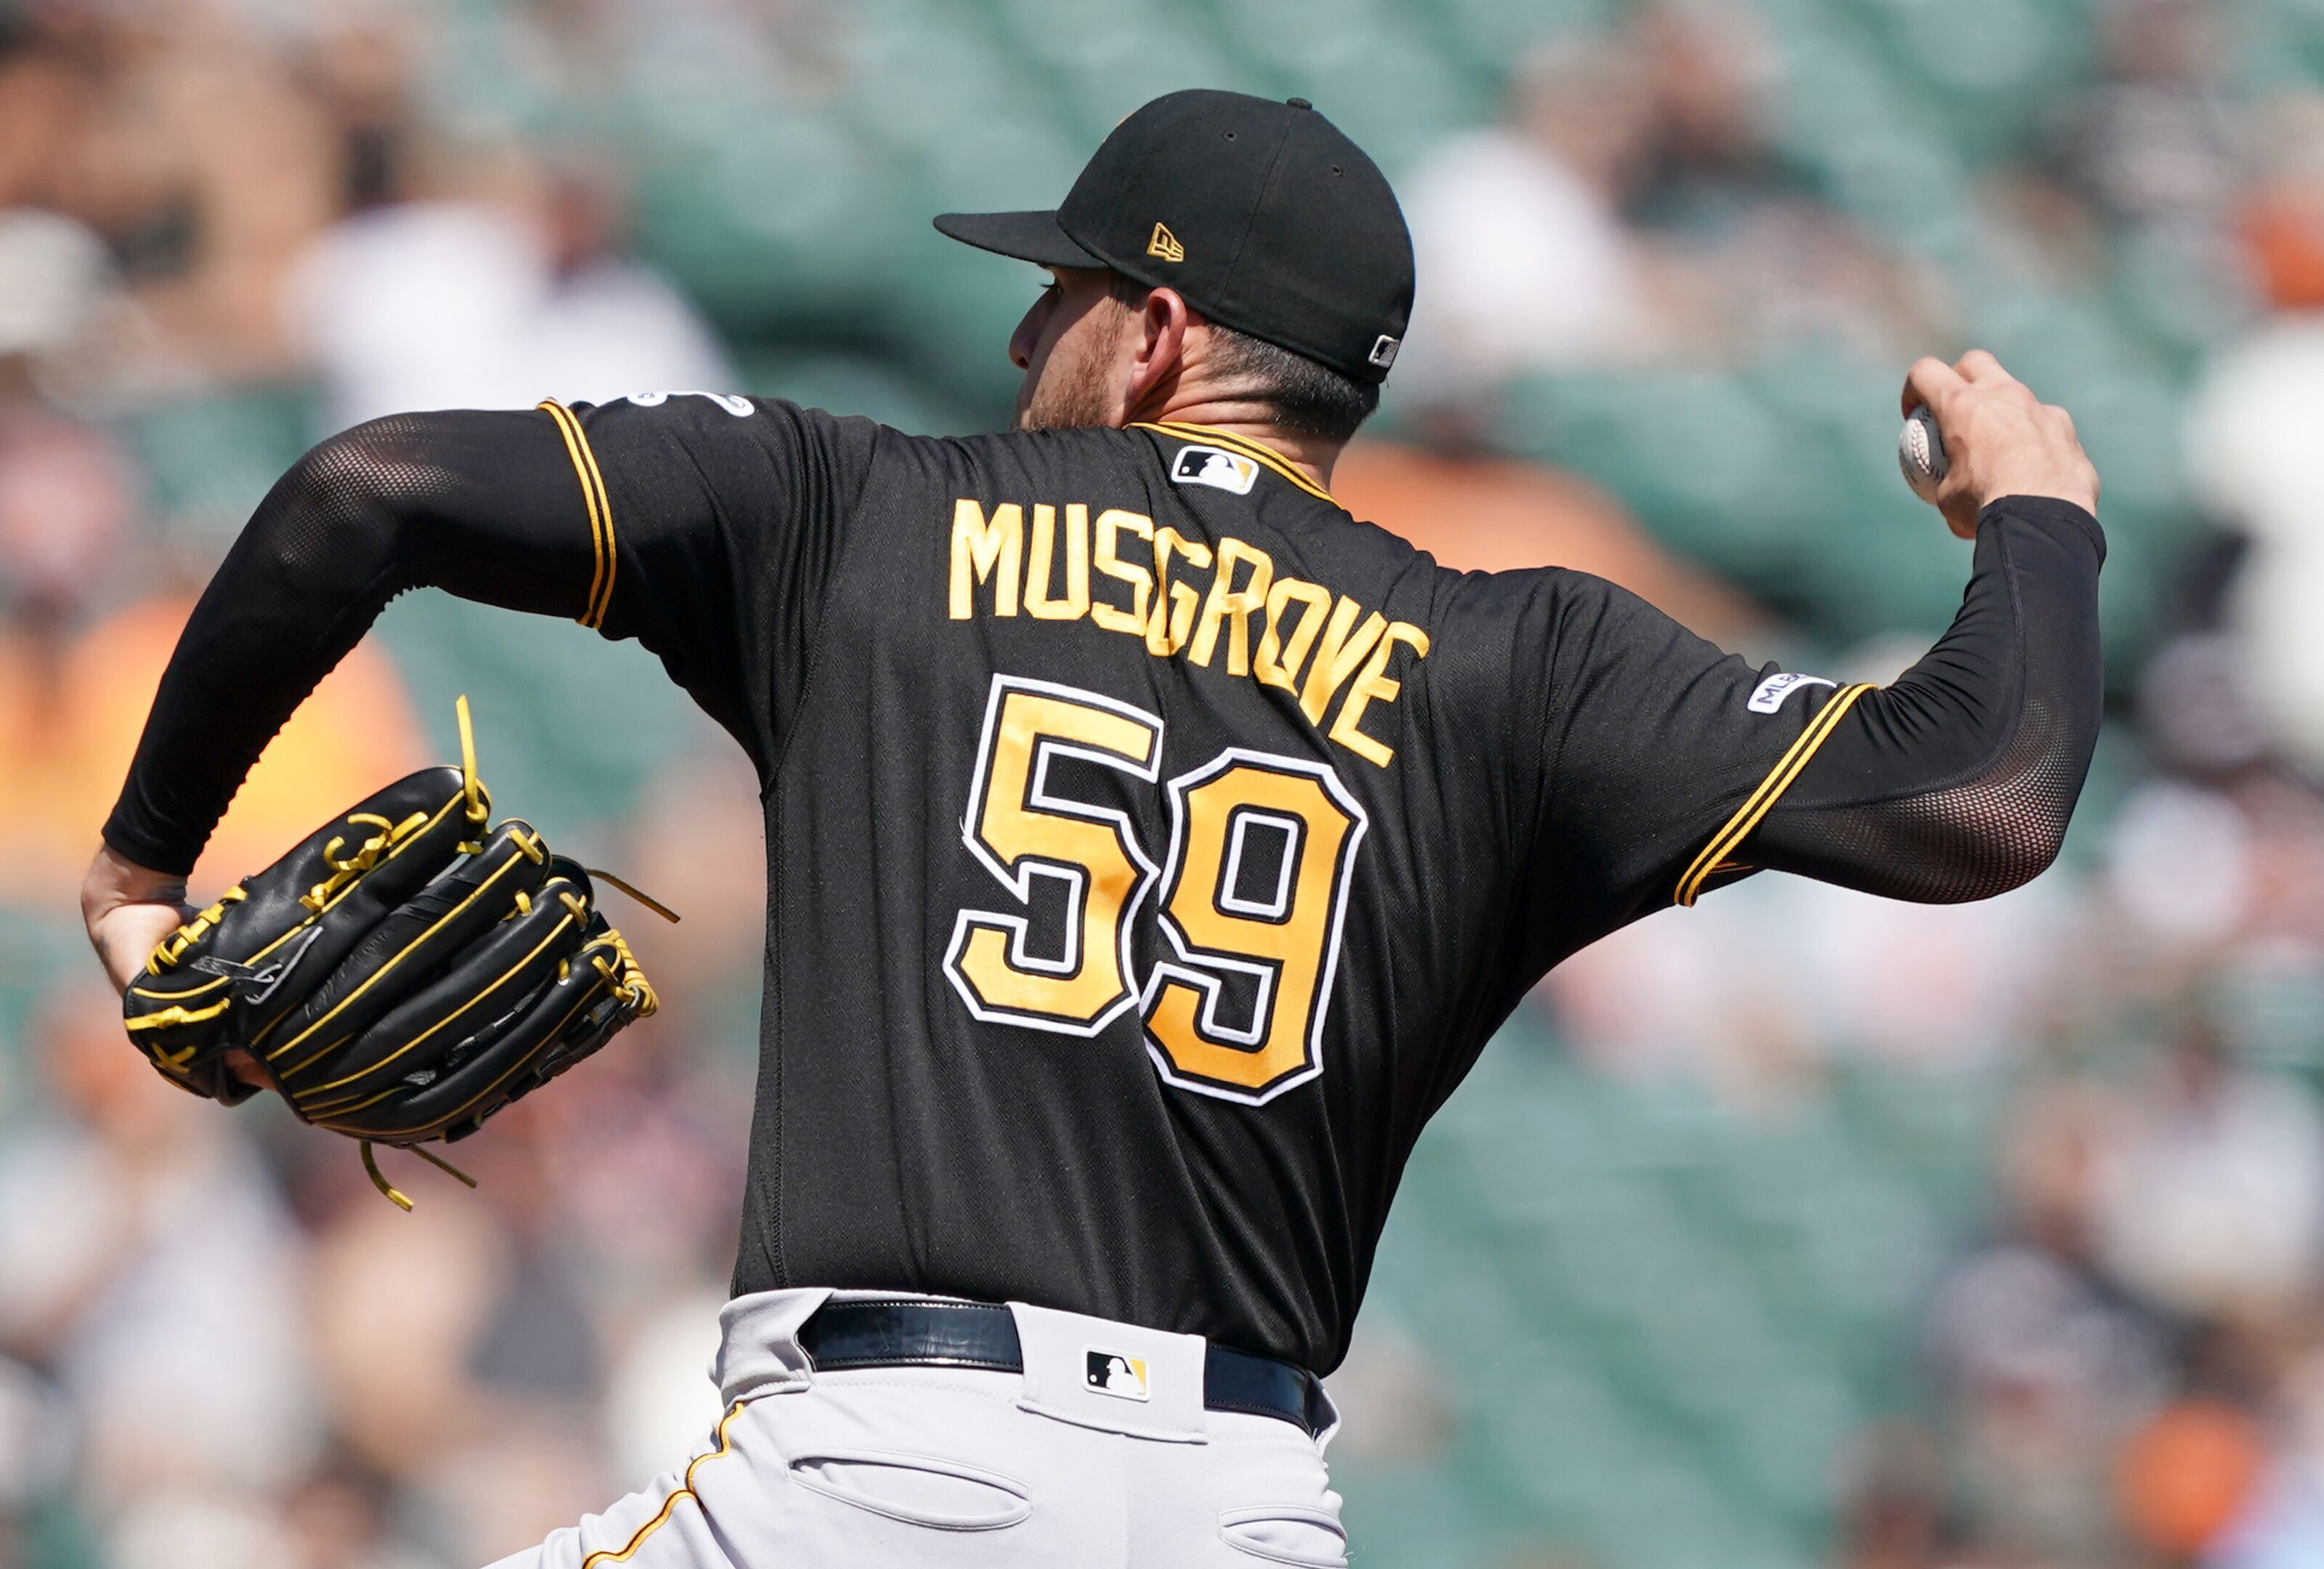 What Should The Pittsburgh Pirates Do With Joe Musgrove?